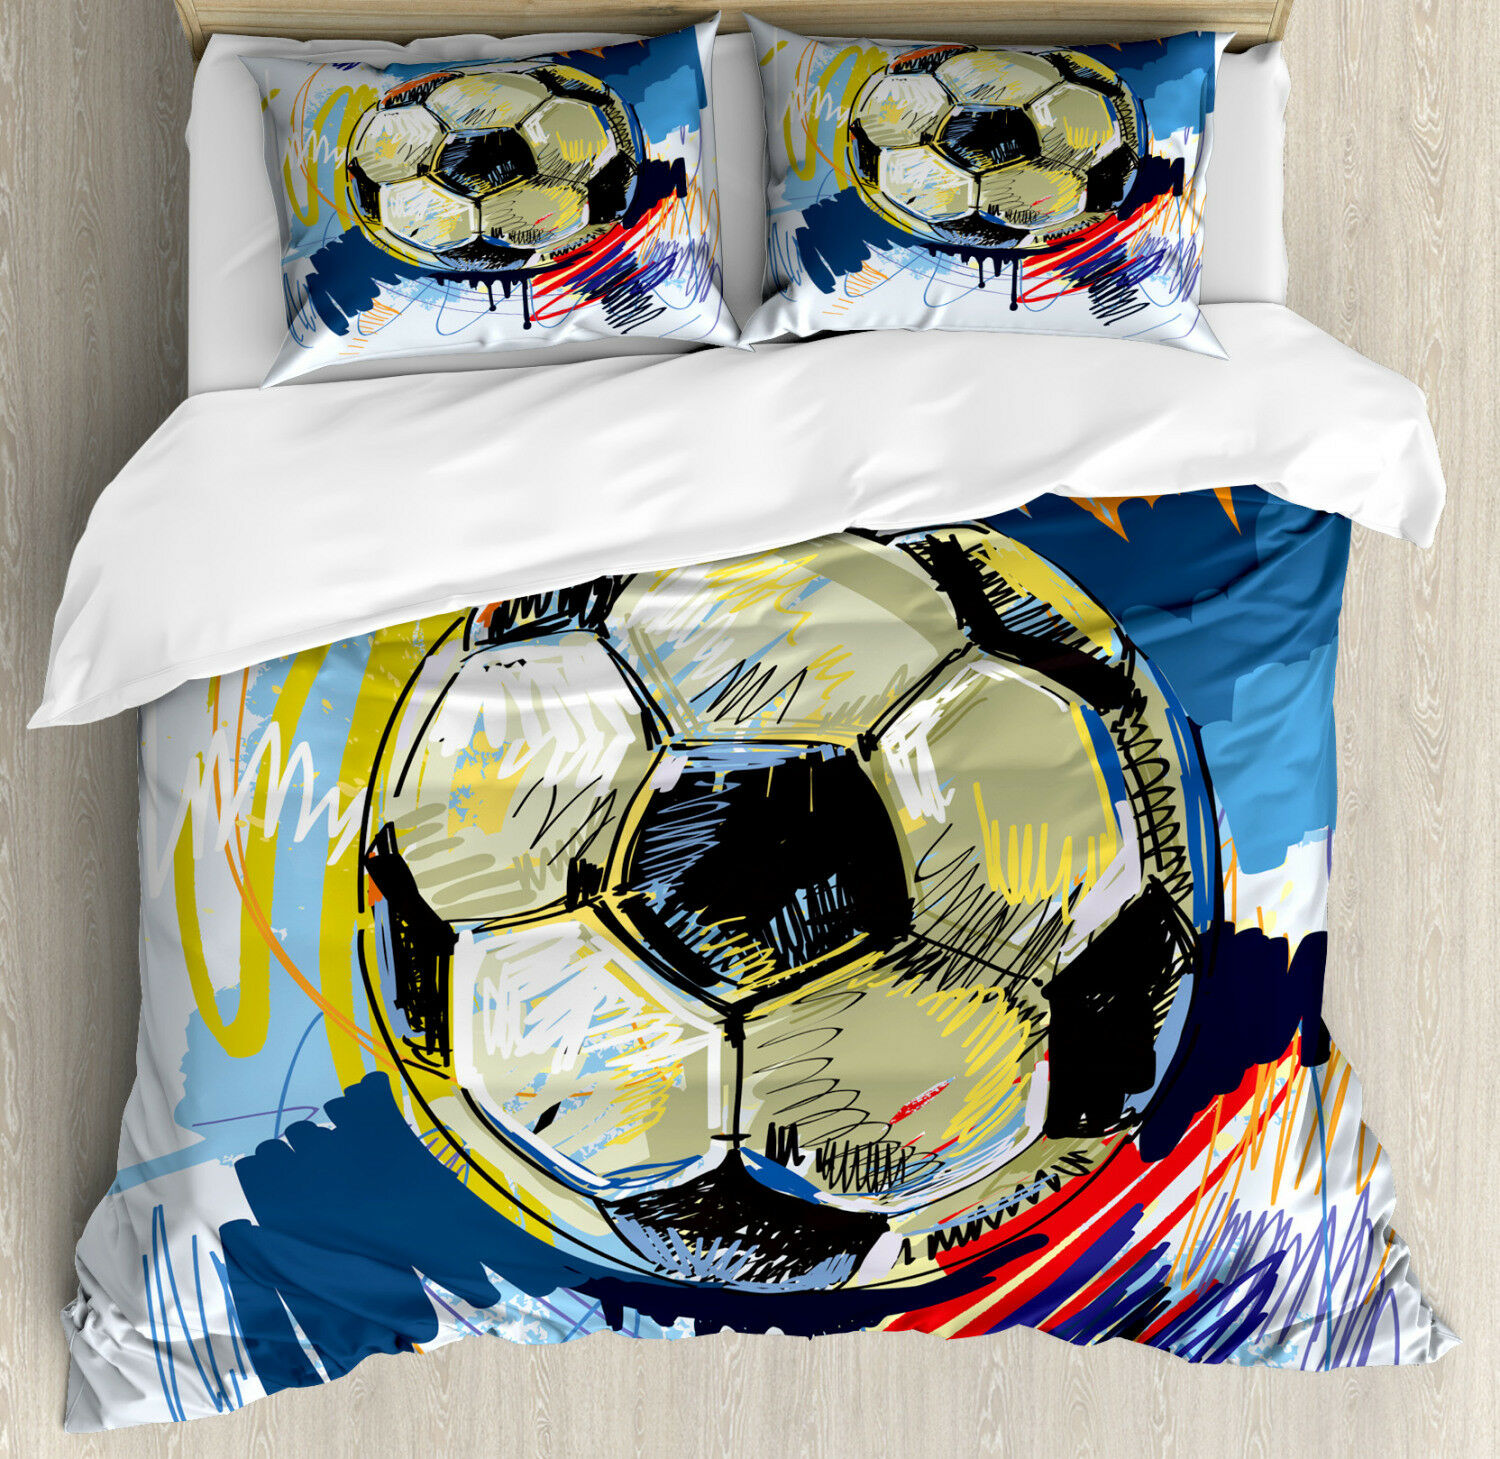 Soccer Duvet Cover Set with Pillow Shams colorful Detailed Artful Print